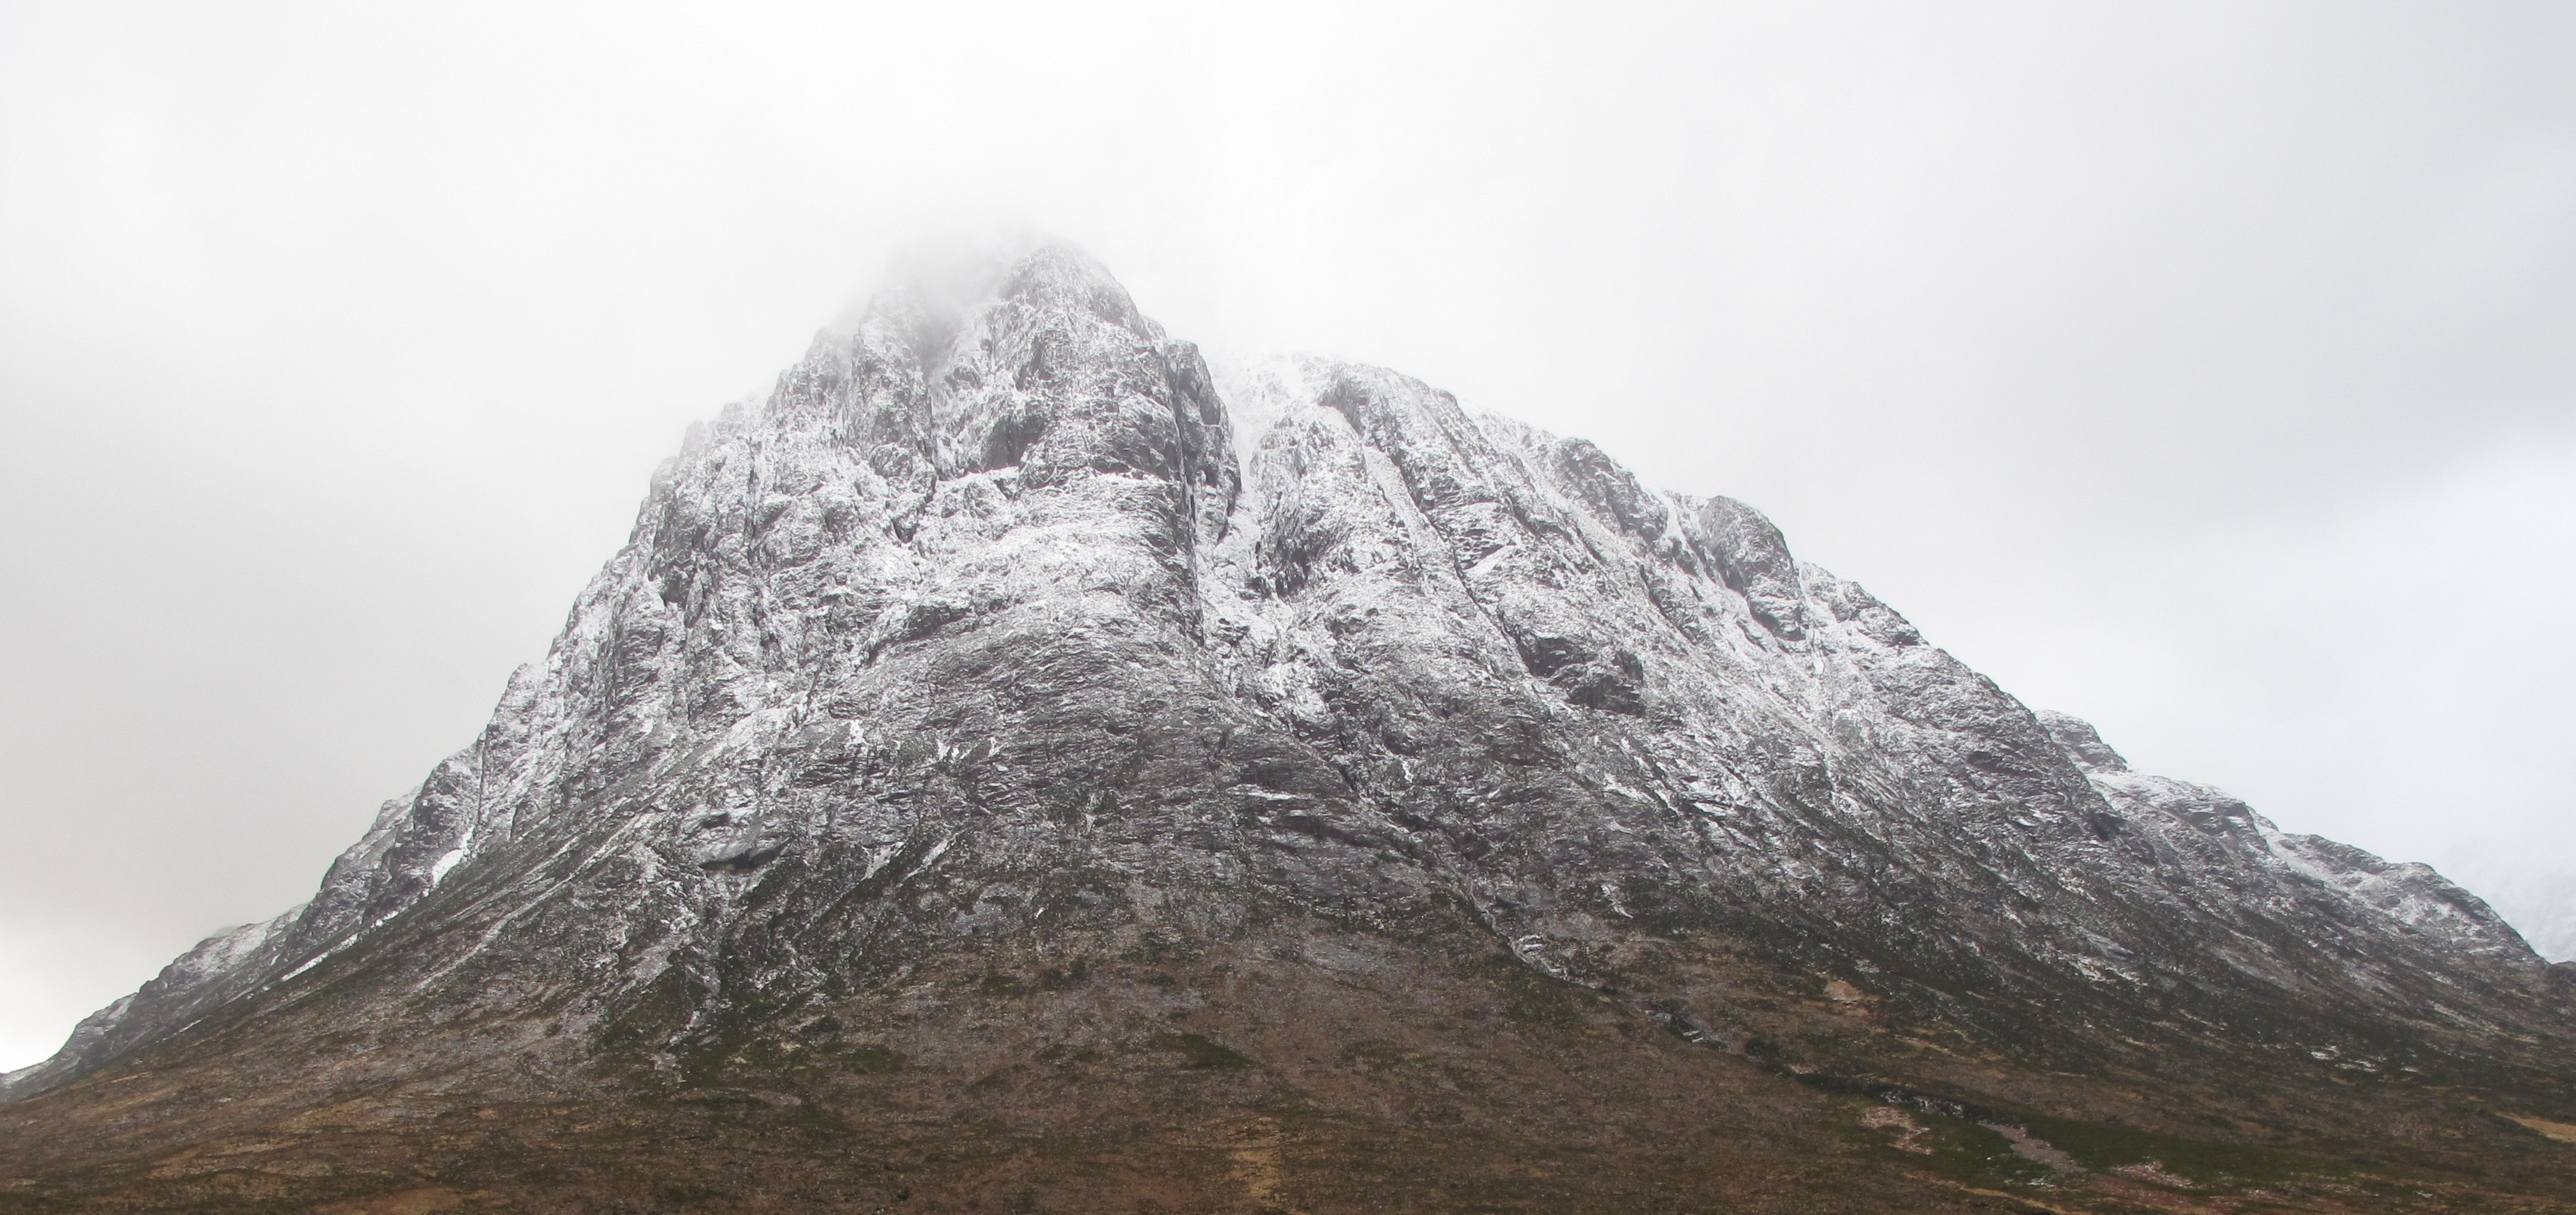 North Face of Stob Dearg shows the snowline clearly.